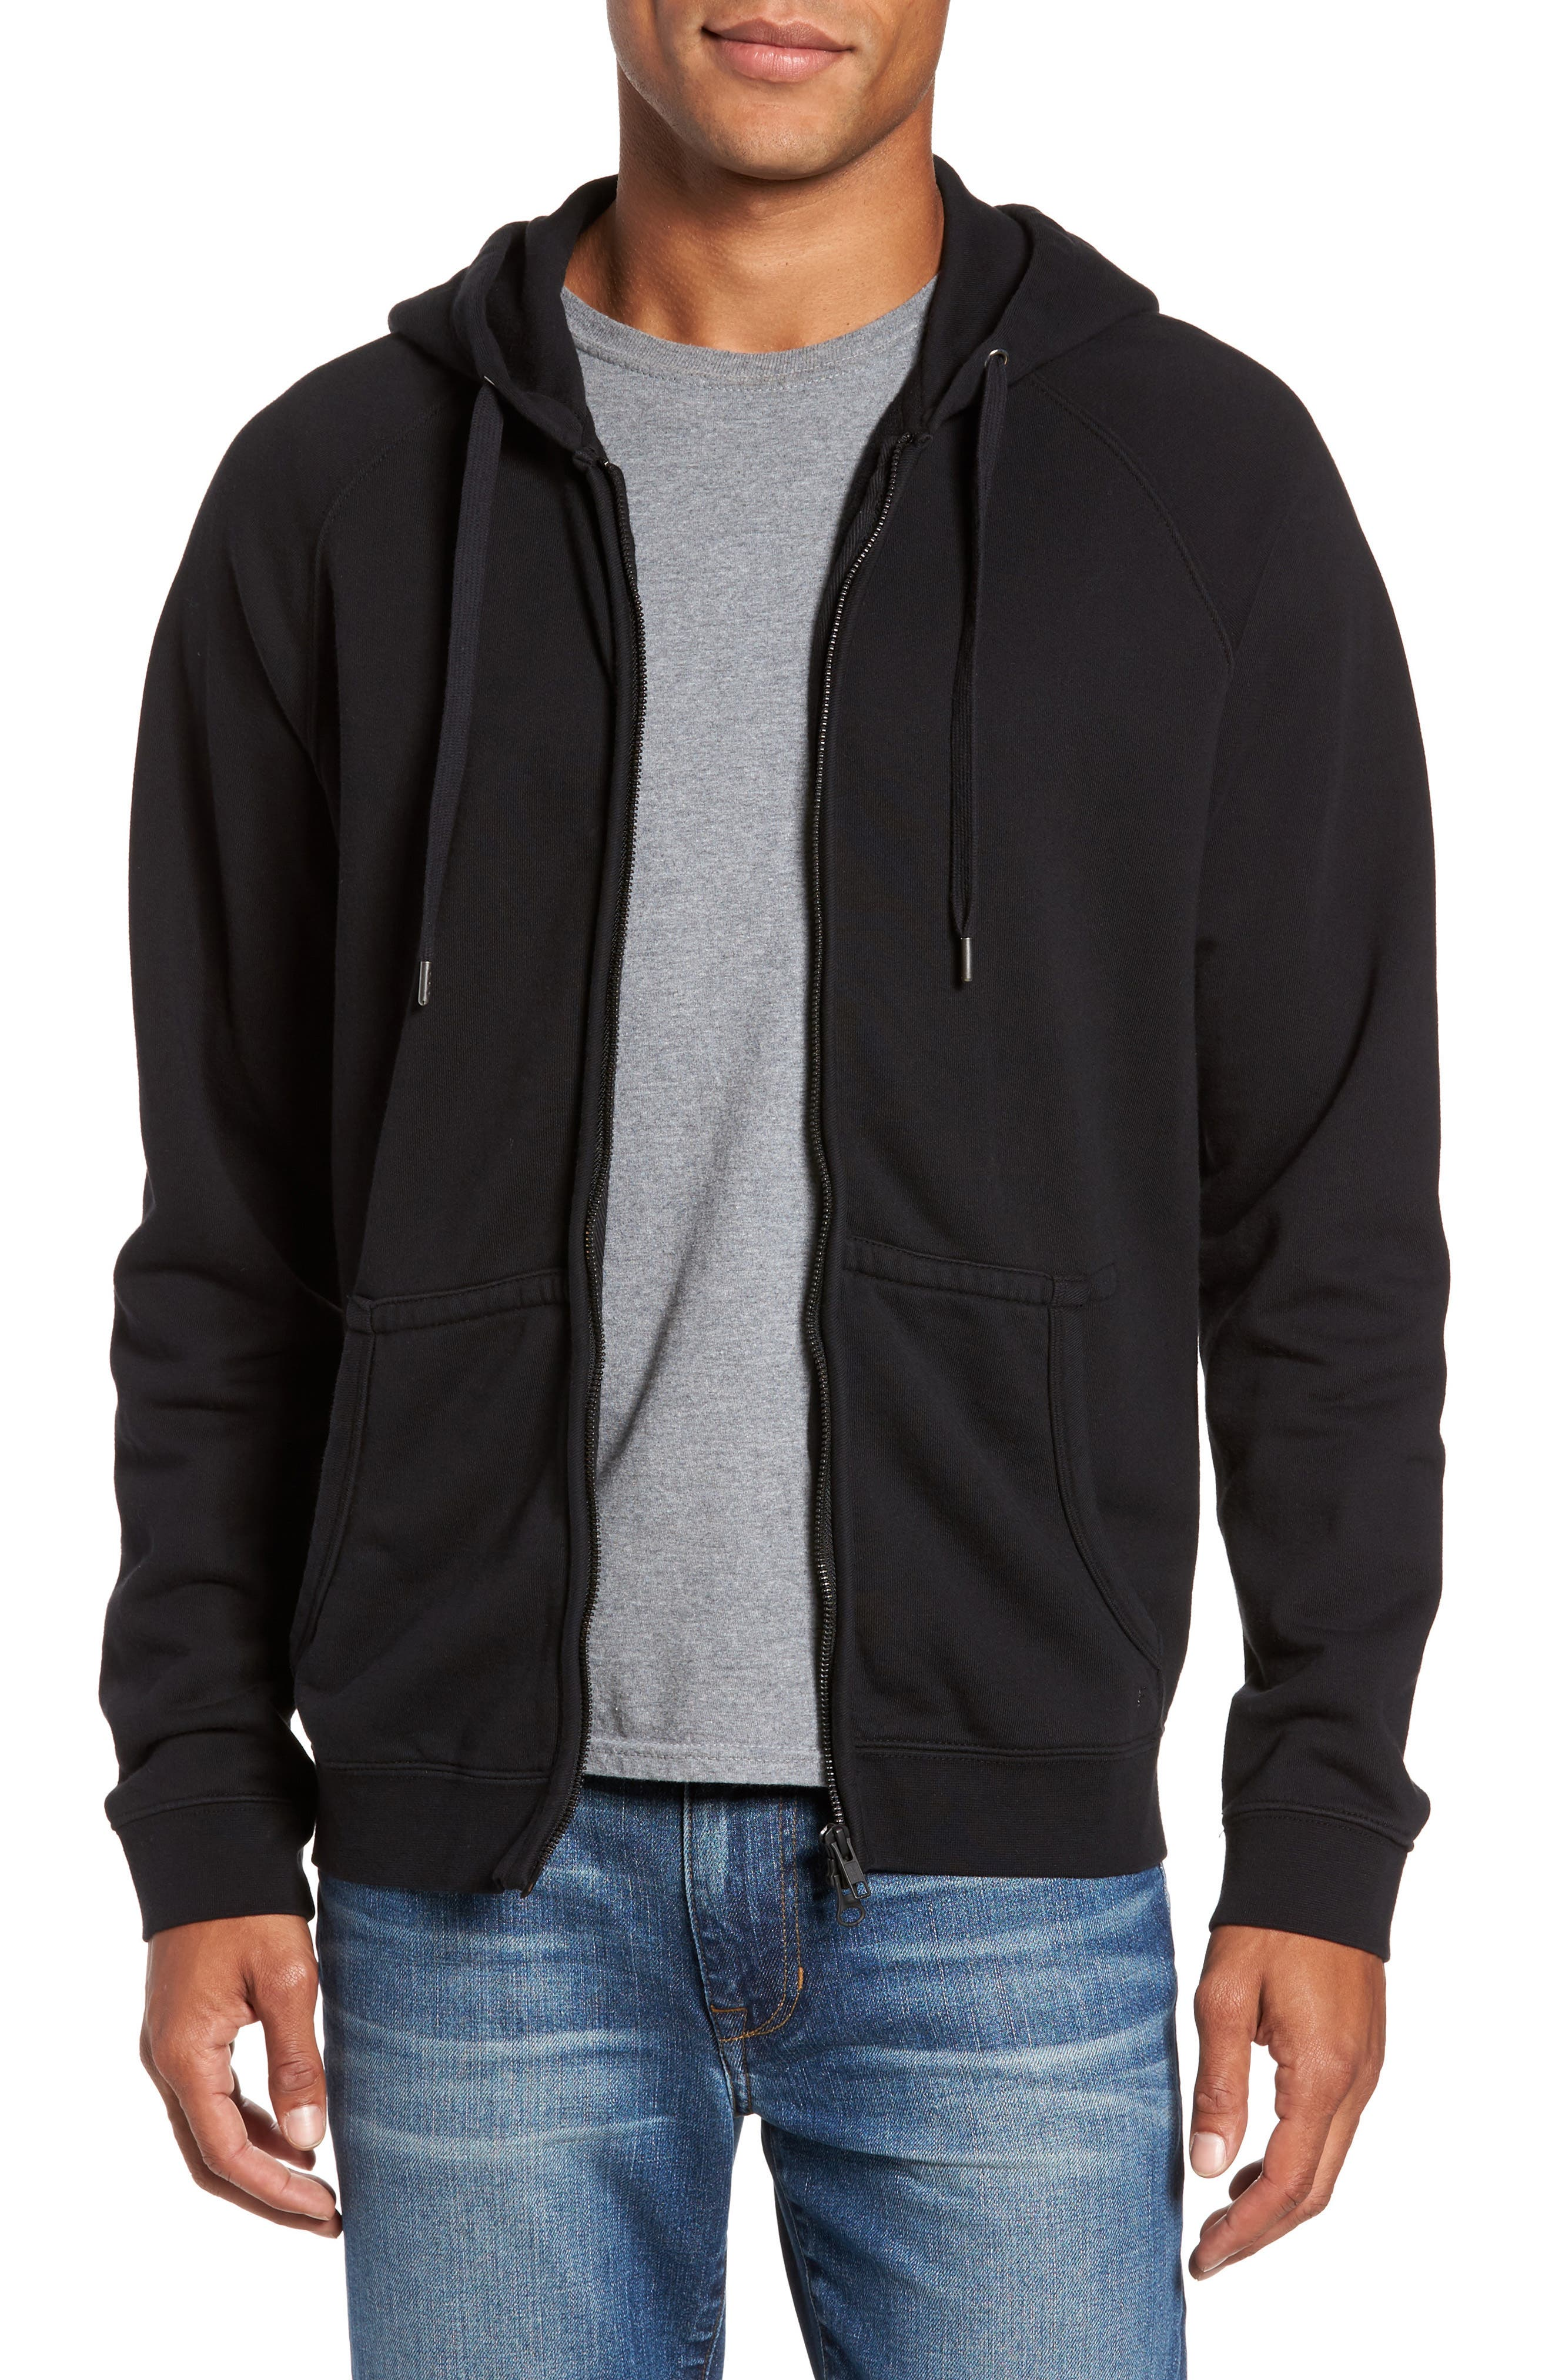 French Terry Zip Hoodie,                         Main,                         color, 001